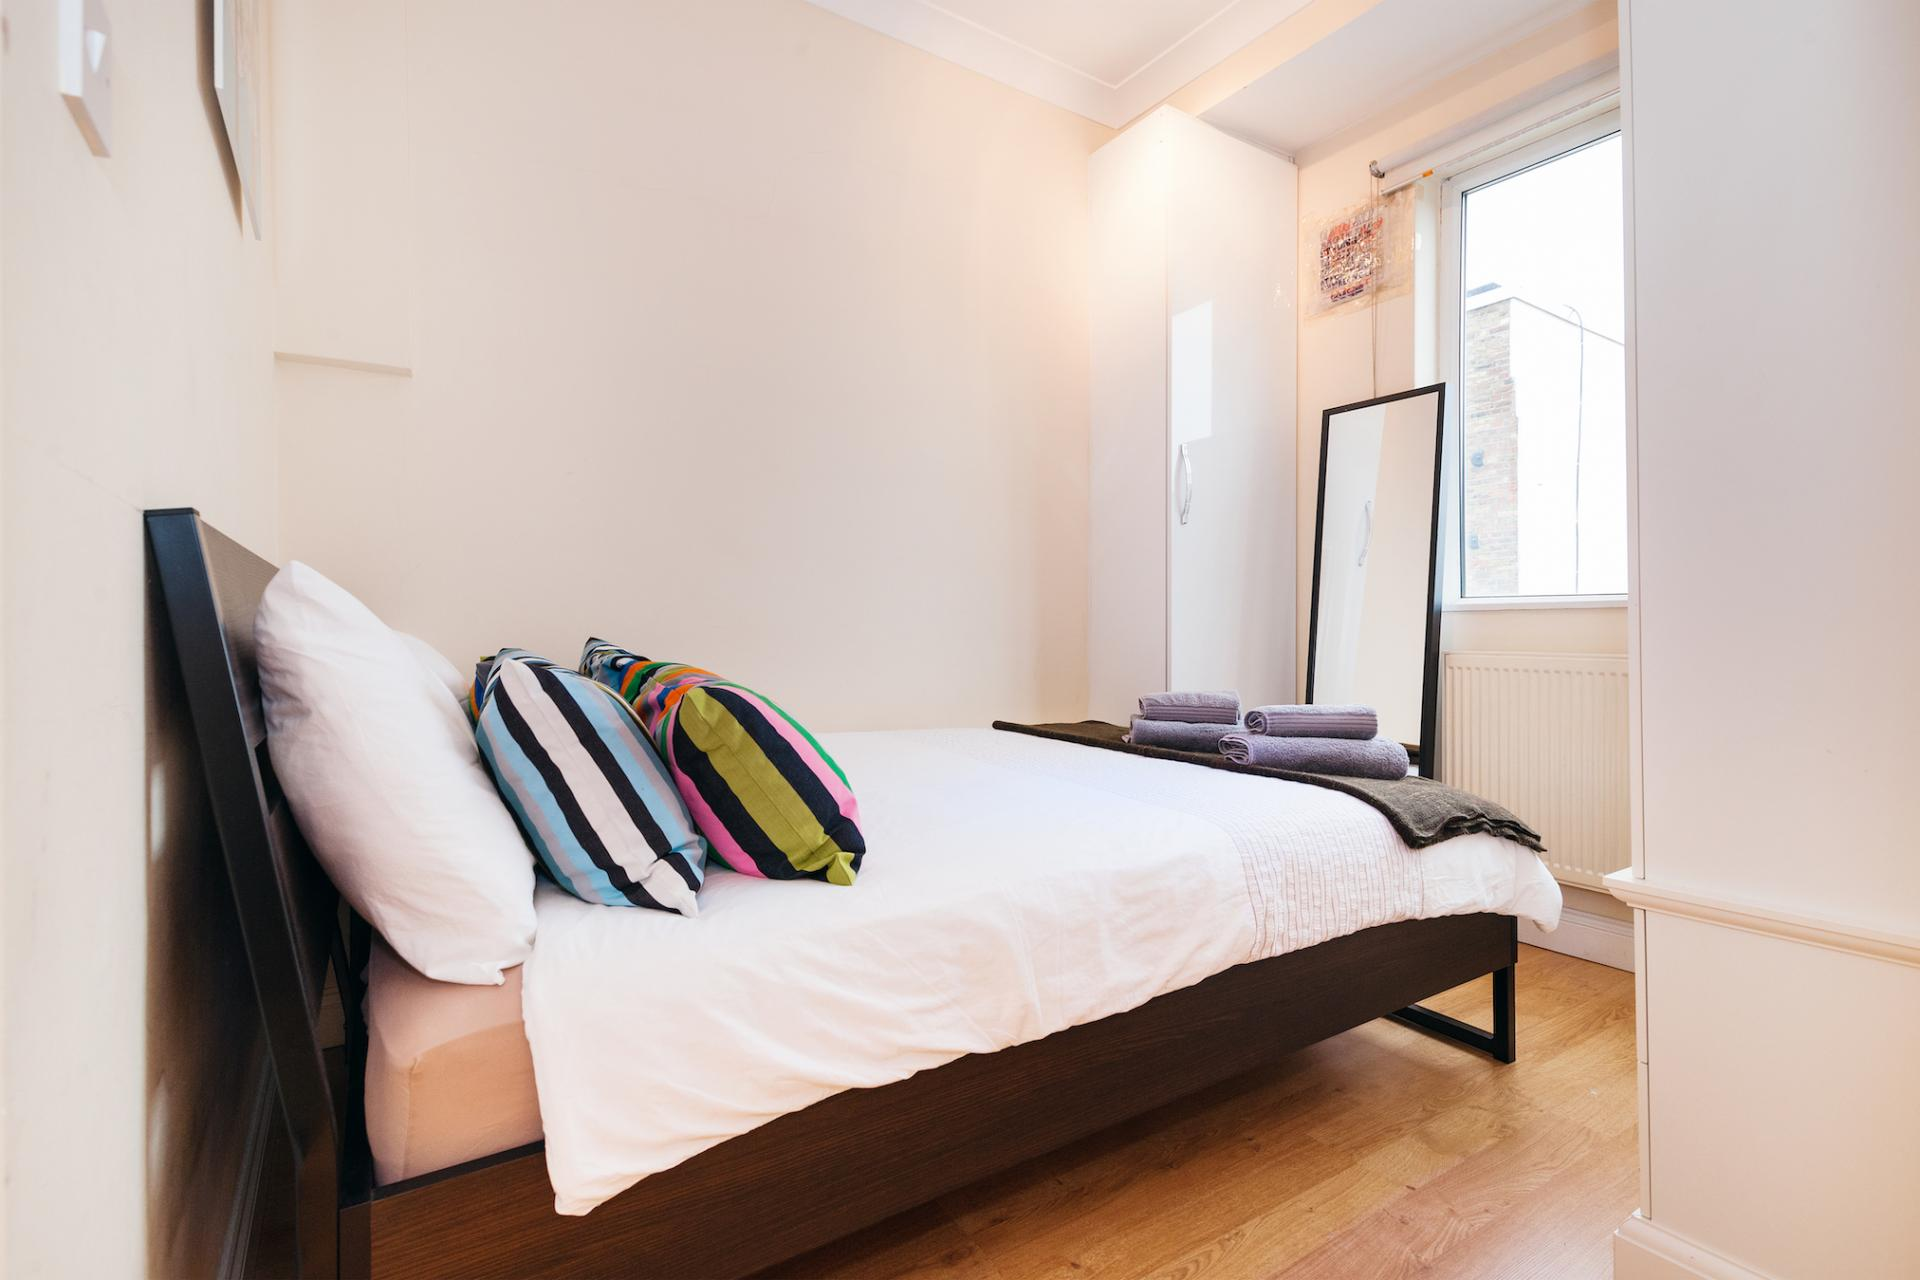 Bed at Kings Cross Corporate Accommodation